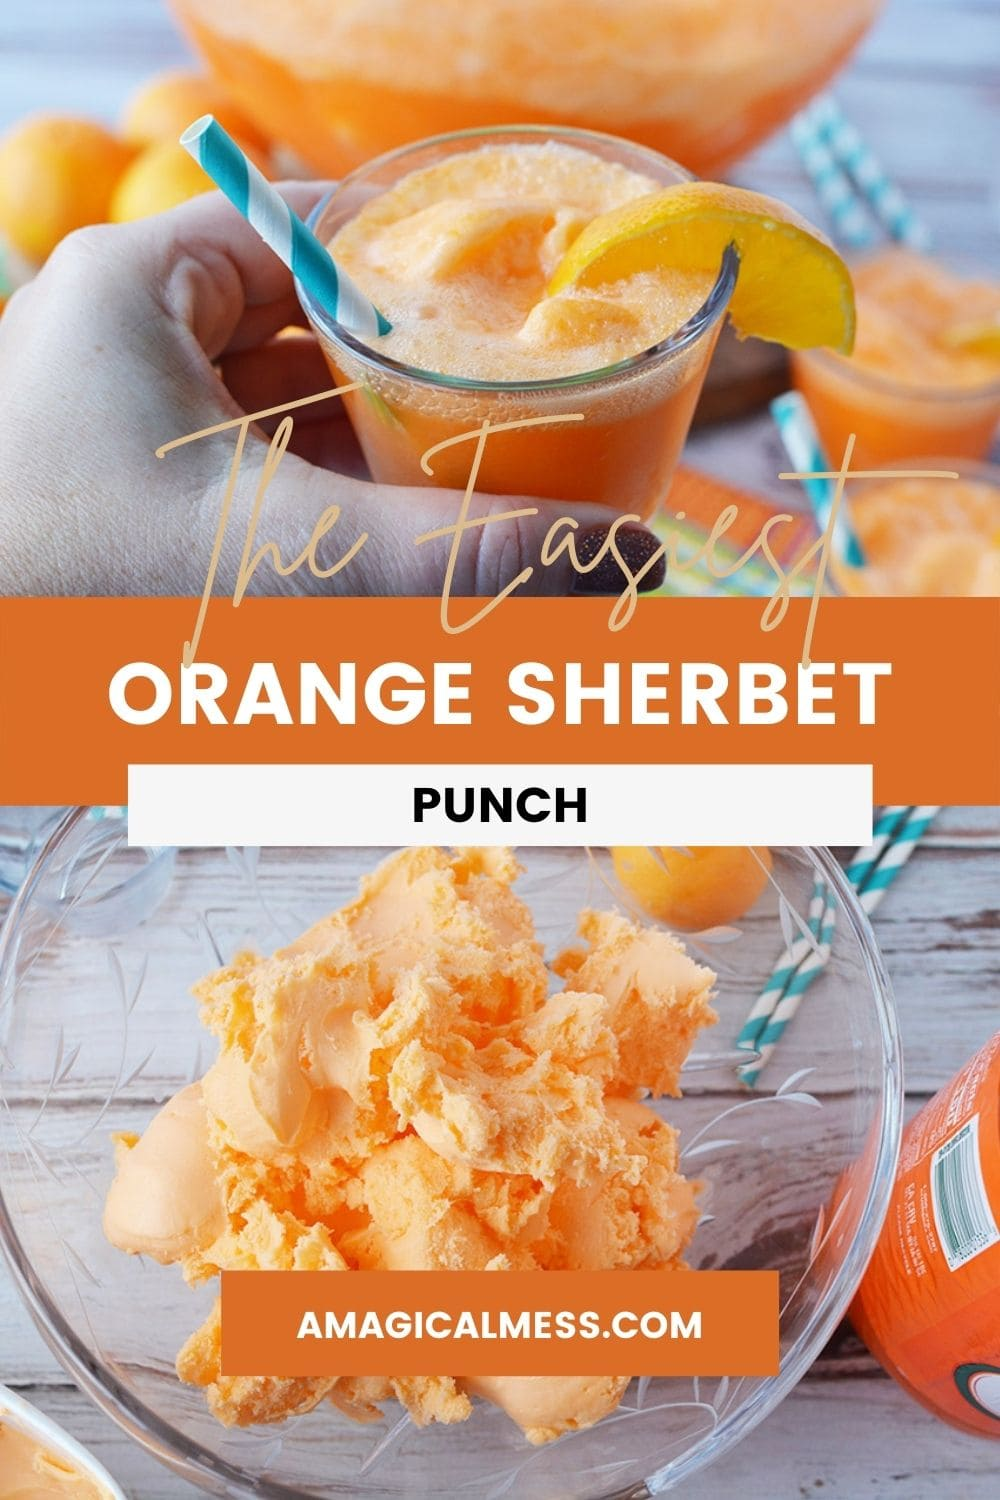 Holding a glass of orange punch and bowl full of orange sherbet.